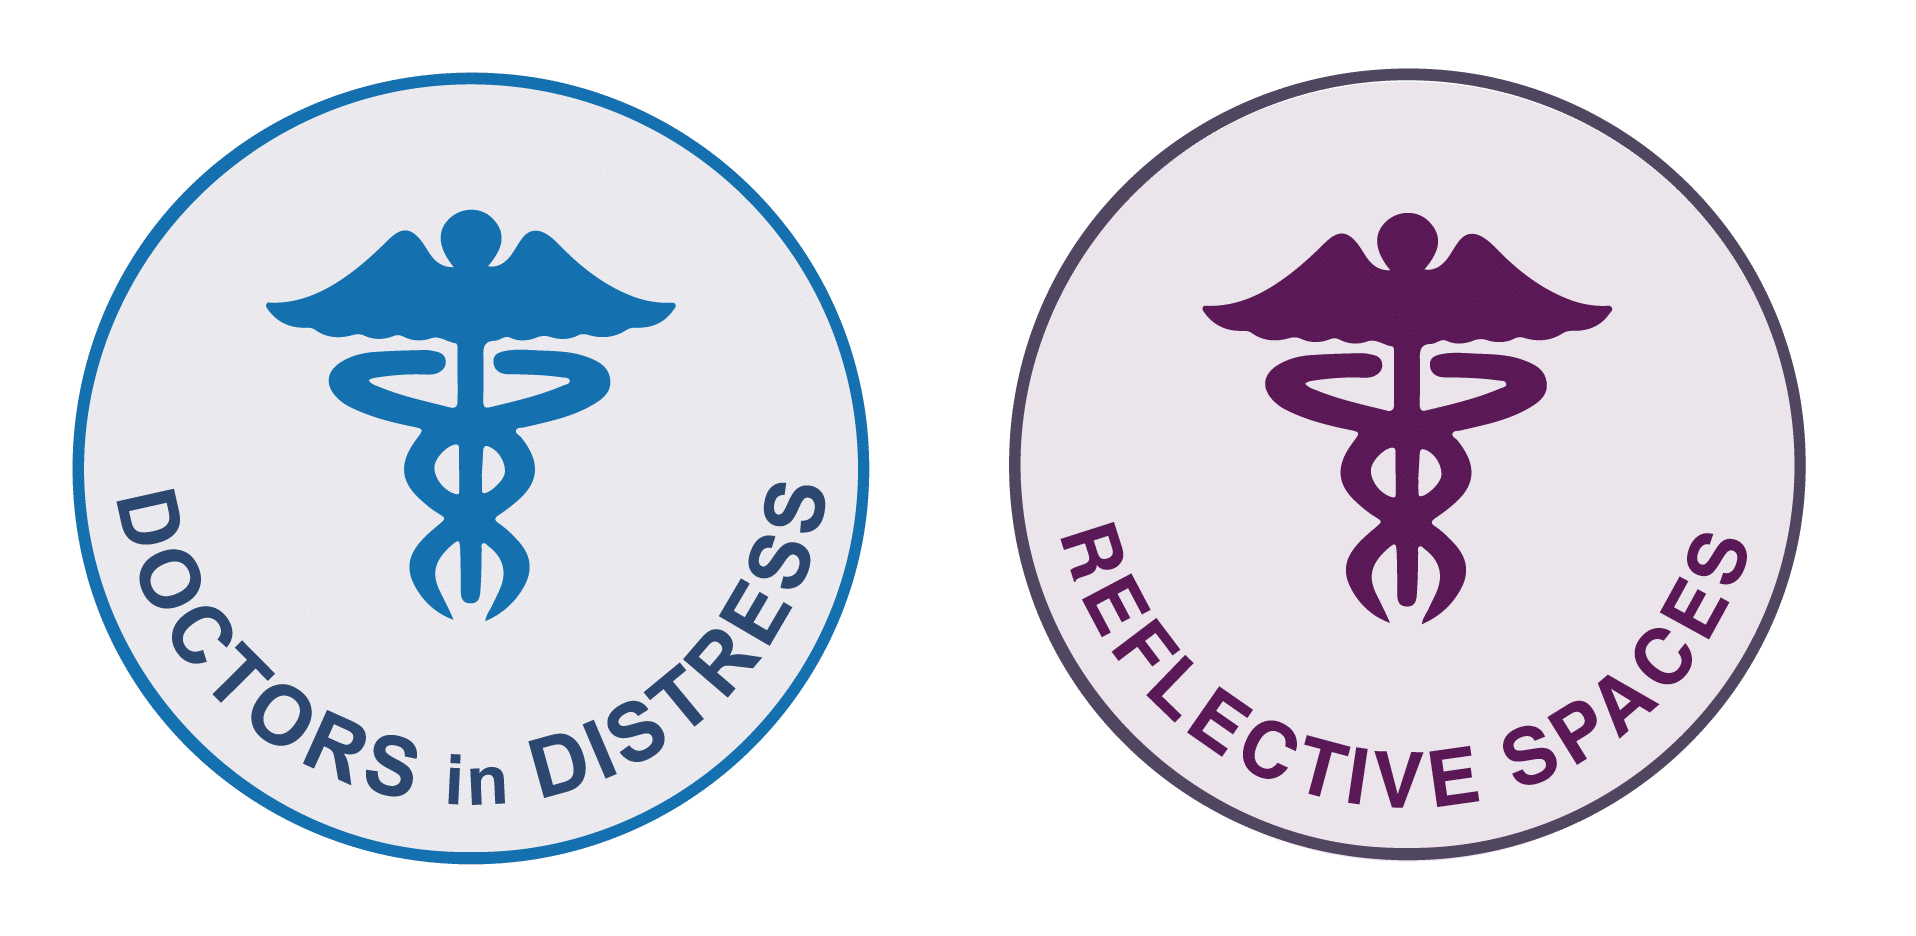 doctors in distress and reflective spaces logo